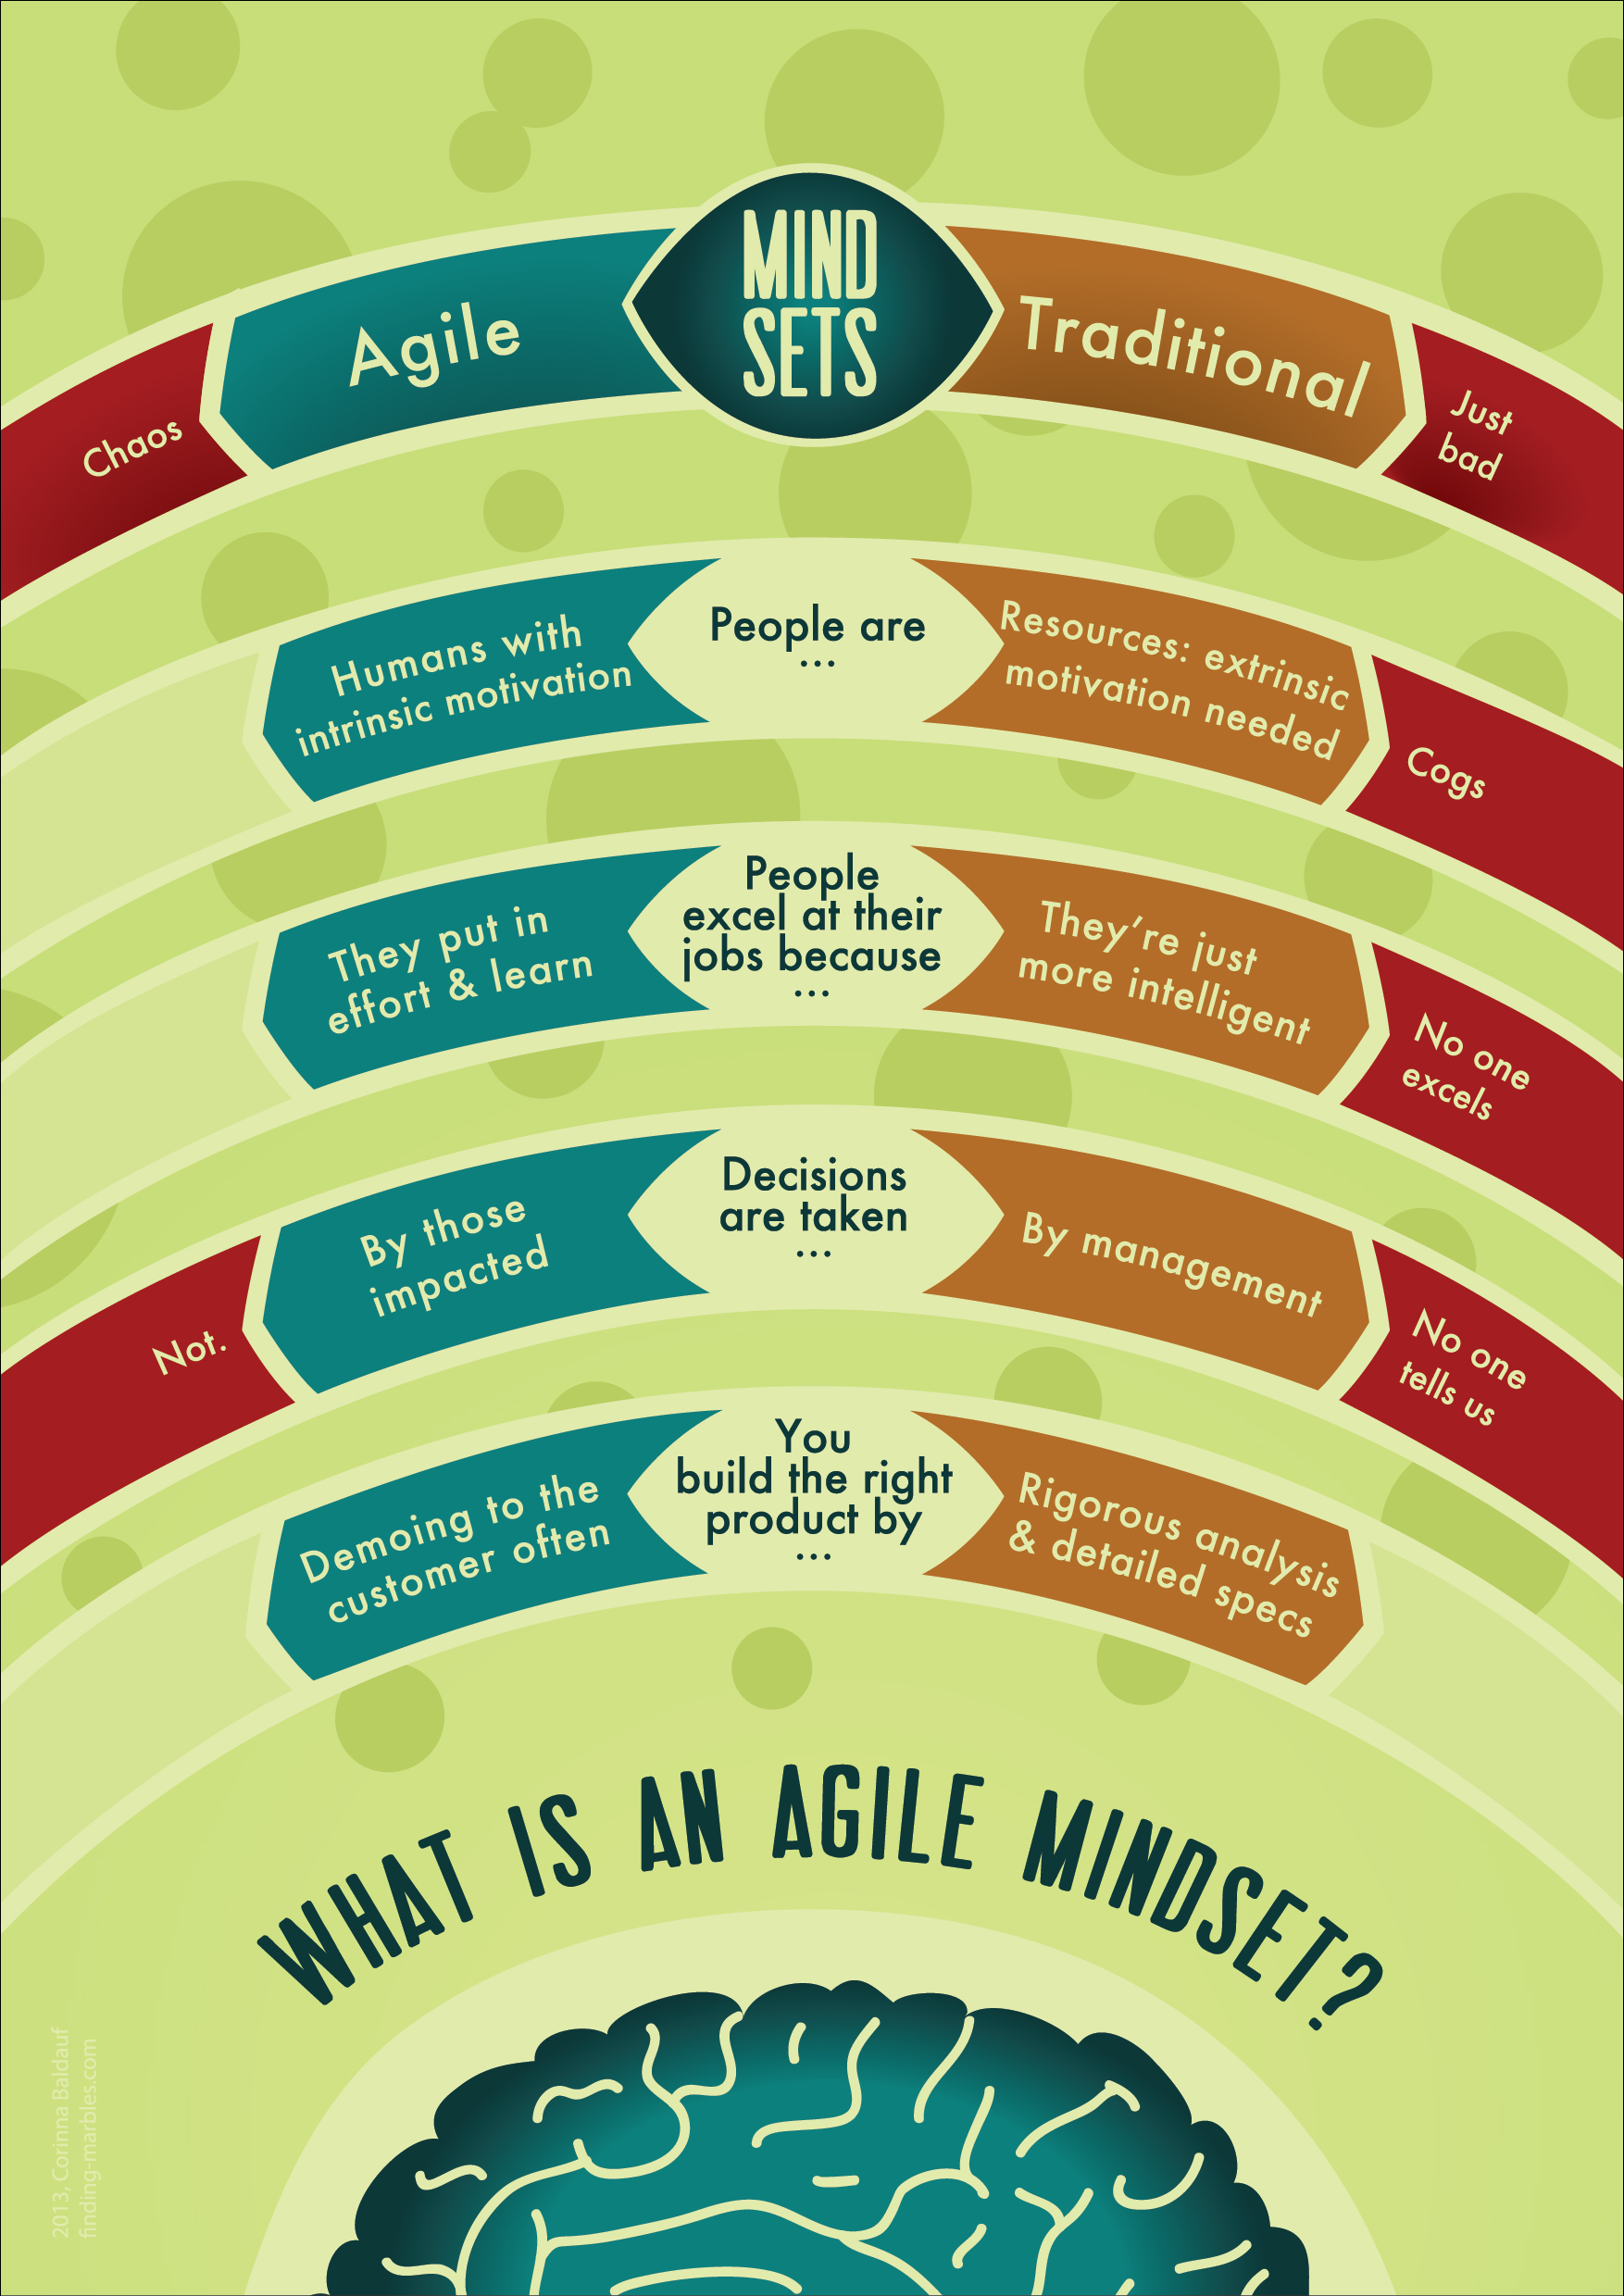 Agile Mindset The Infographic Finding Marbles